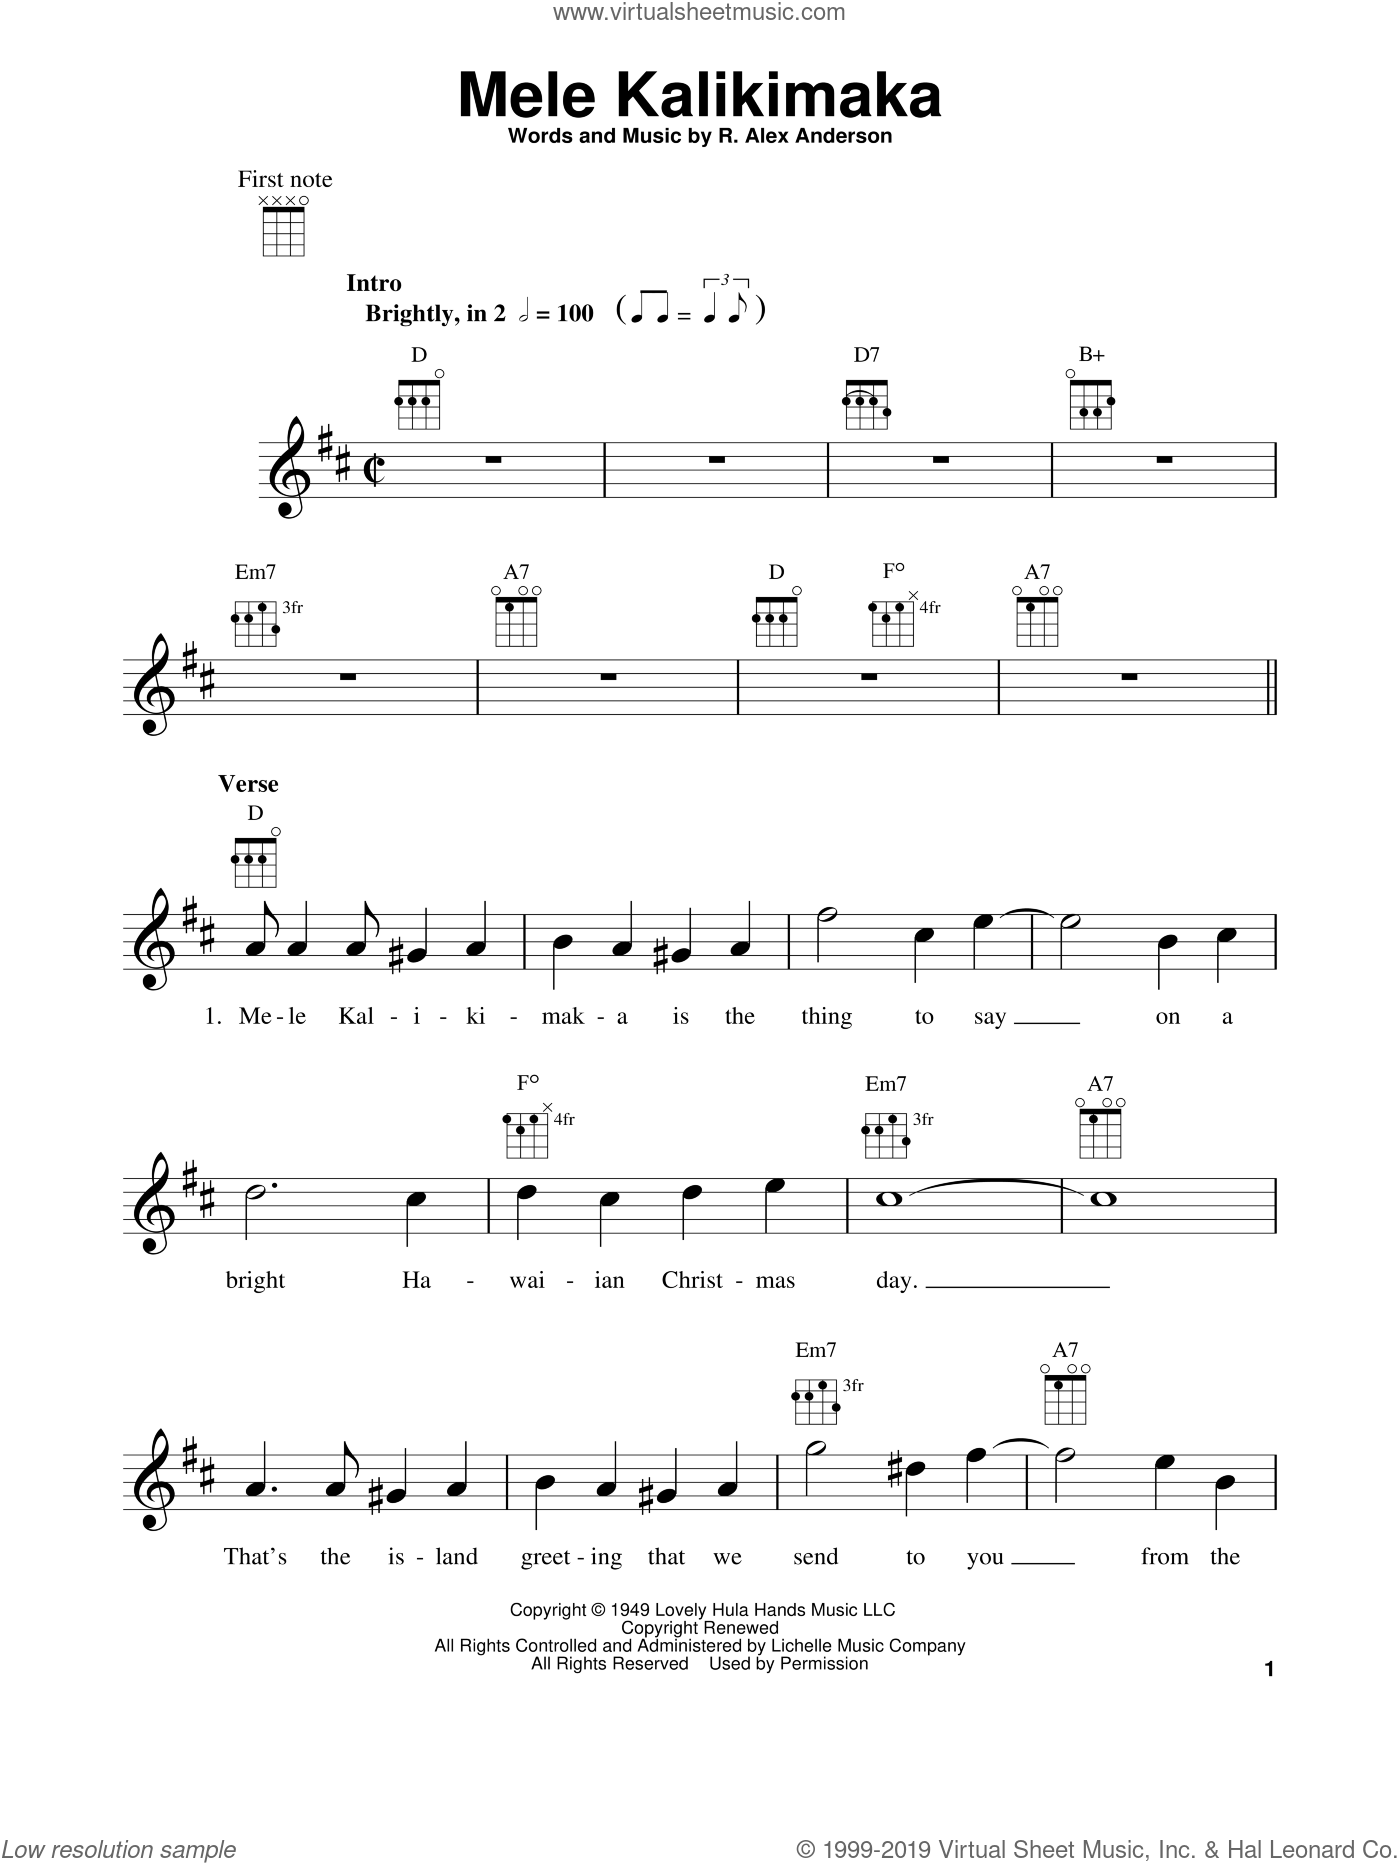 Mele Kalikimaka sheet music for ukulele by R. Alex Anderson